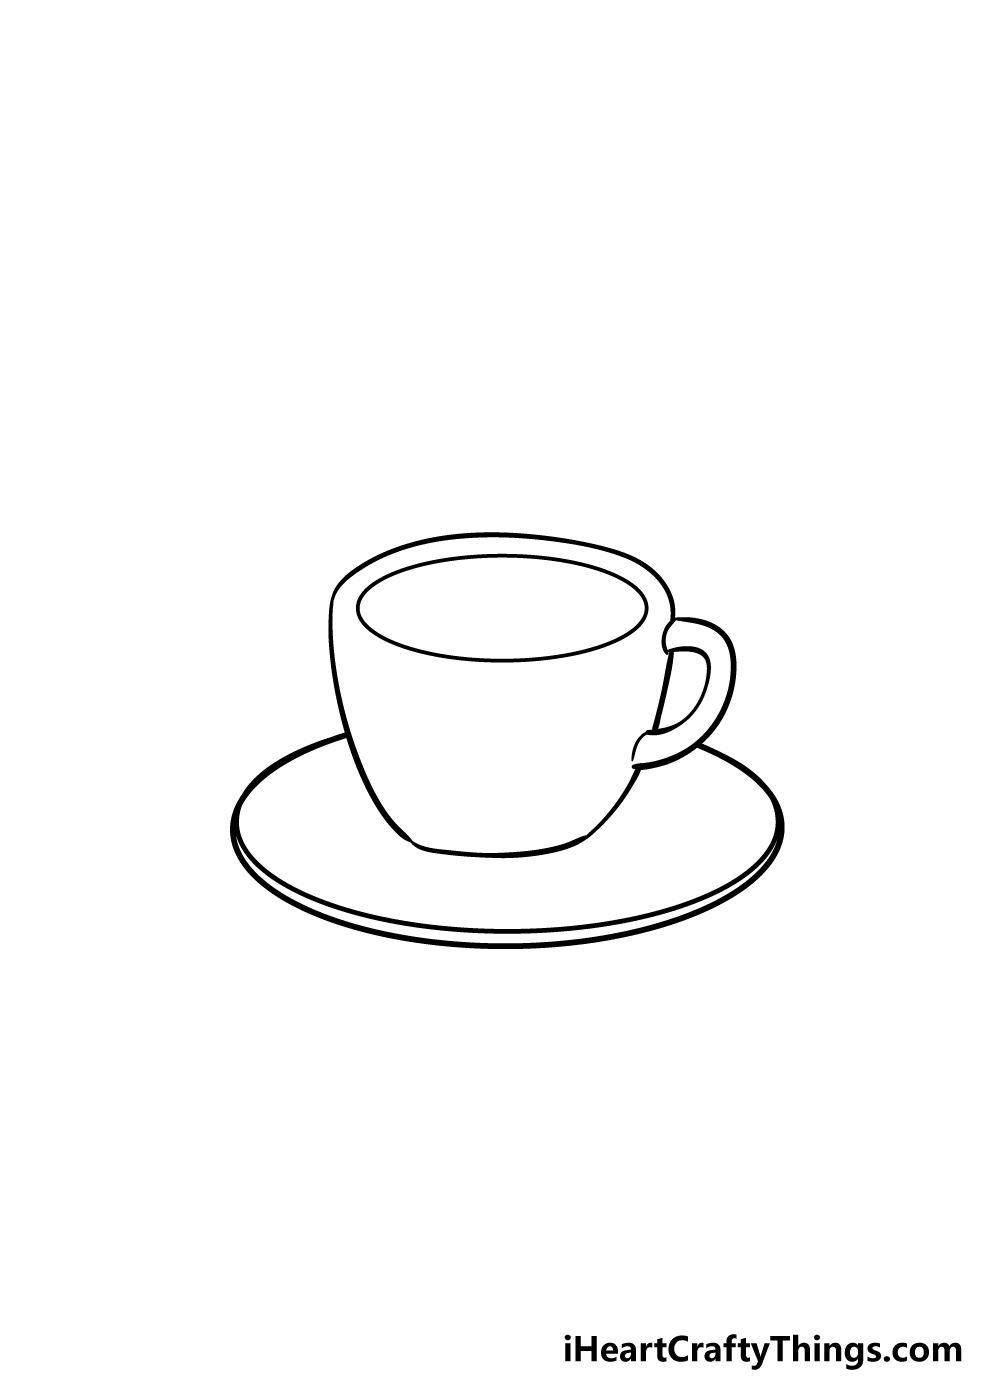 coffee cup drawing step 4